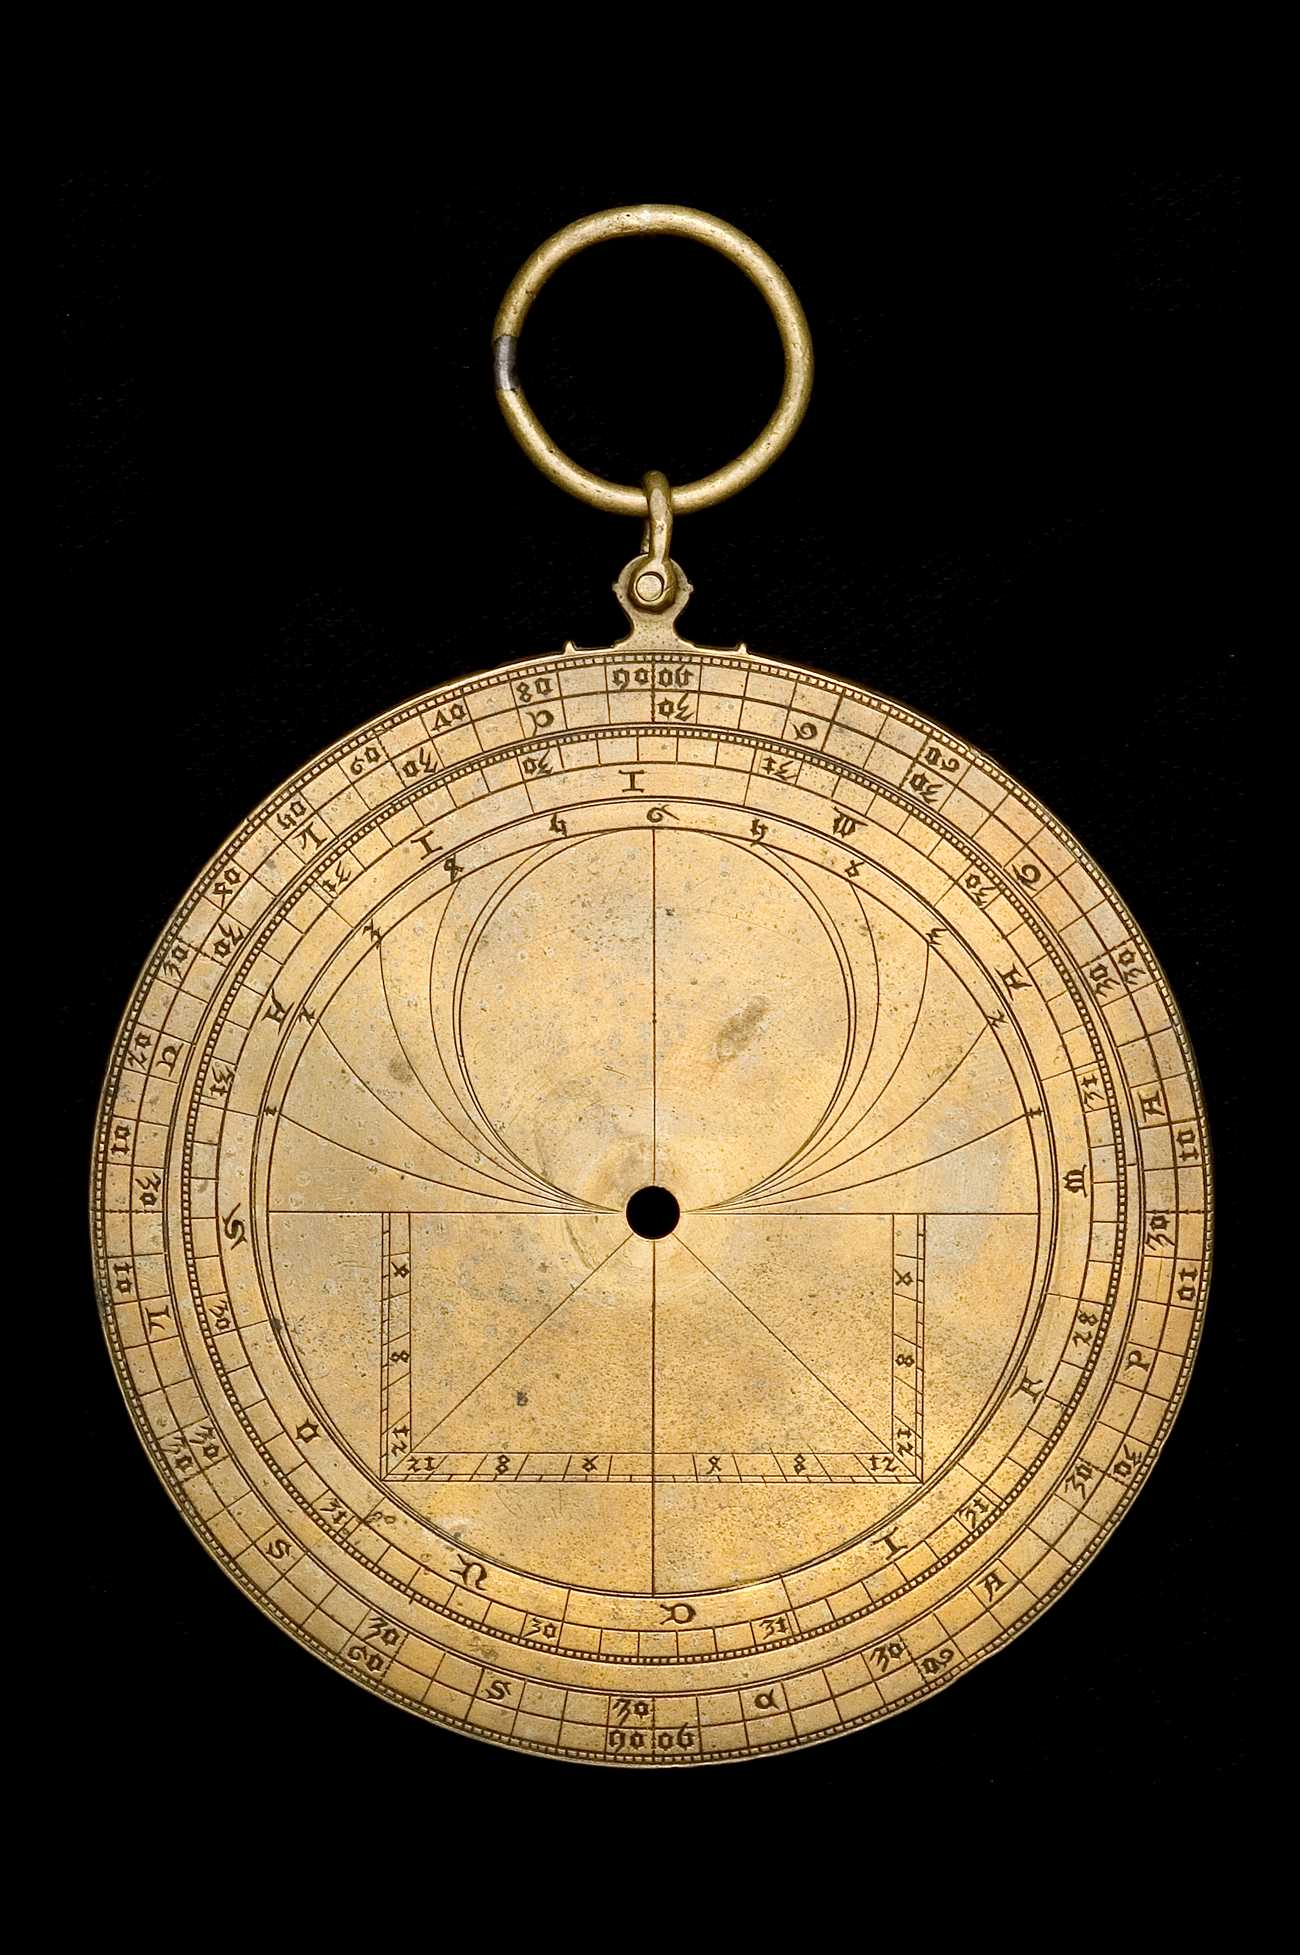 Astrolabe Image Report Inventory Number 52473: Astrolabe Report (inventory Number 39540